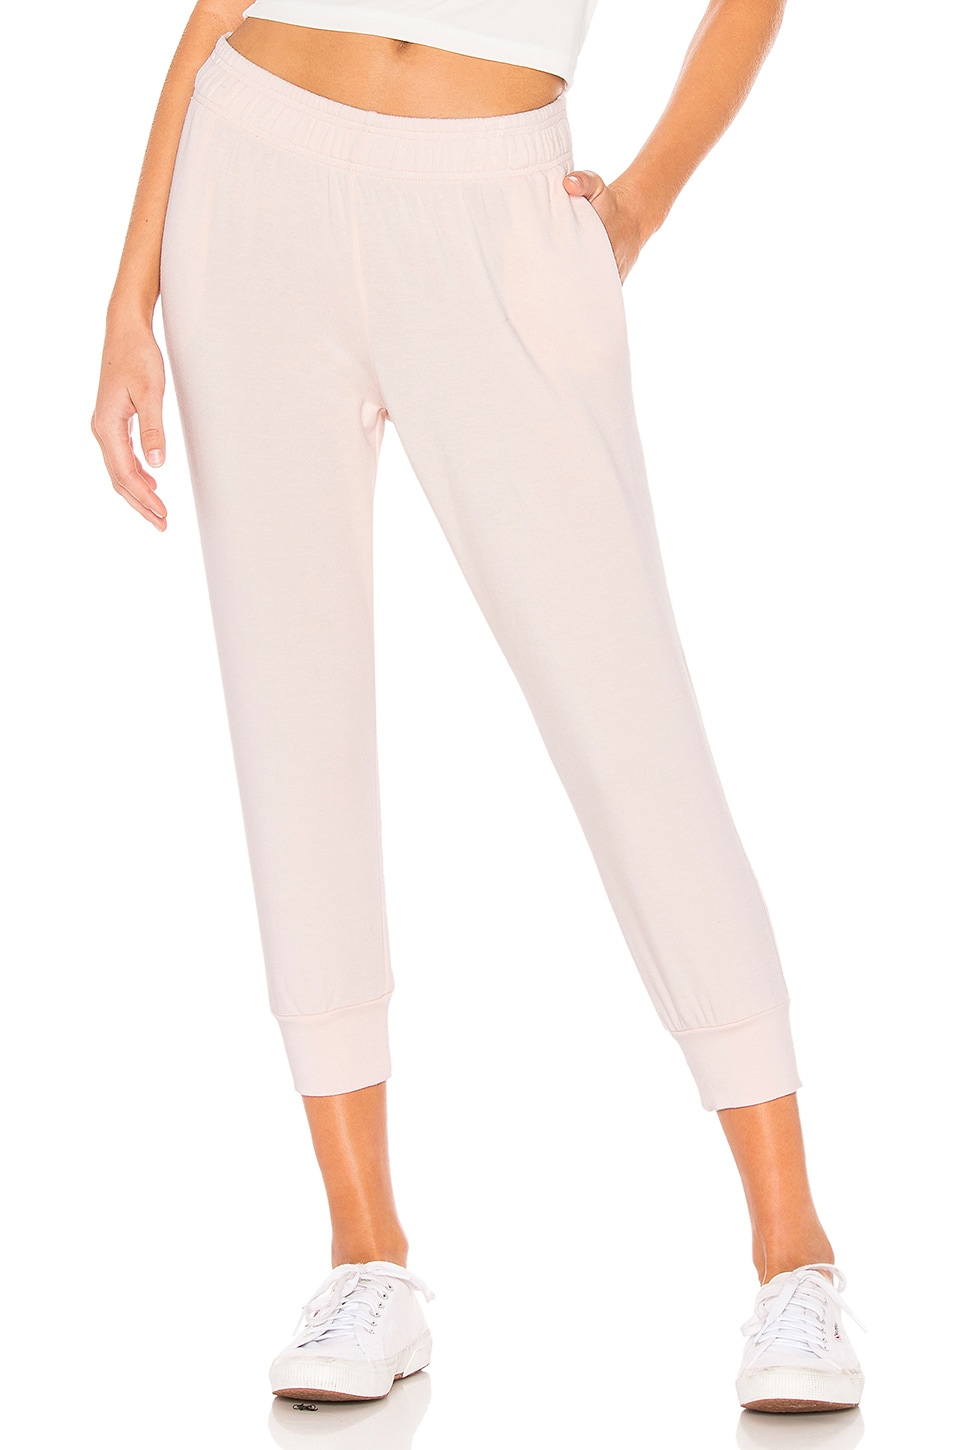 Selkie The Vintage Jogger in Bunny